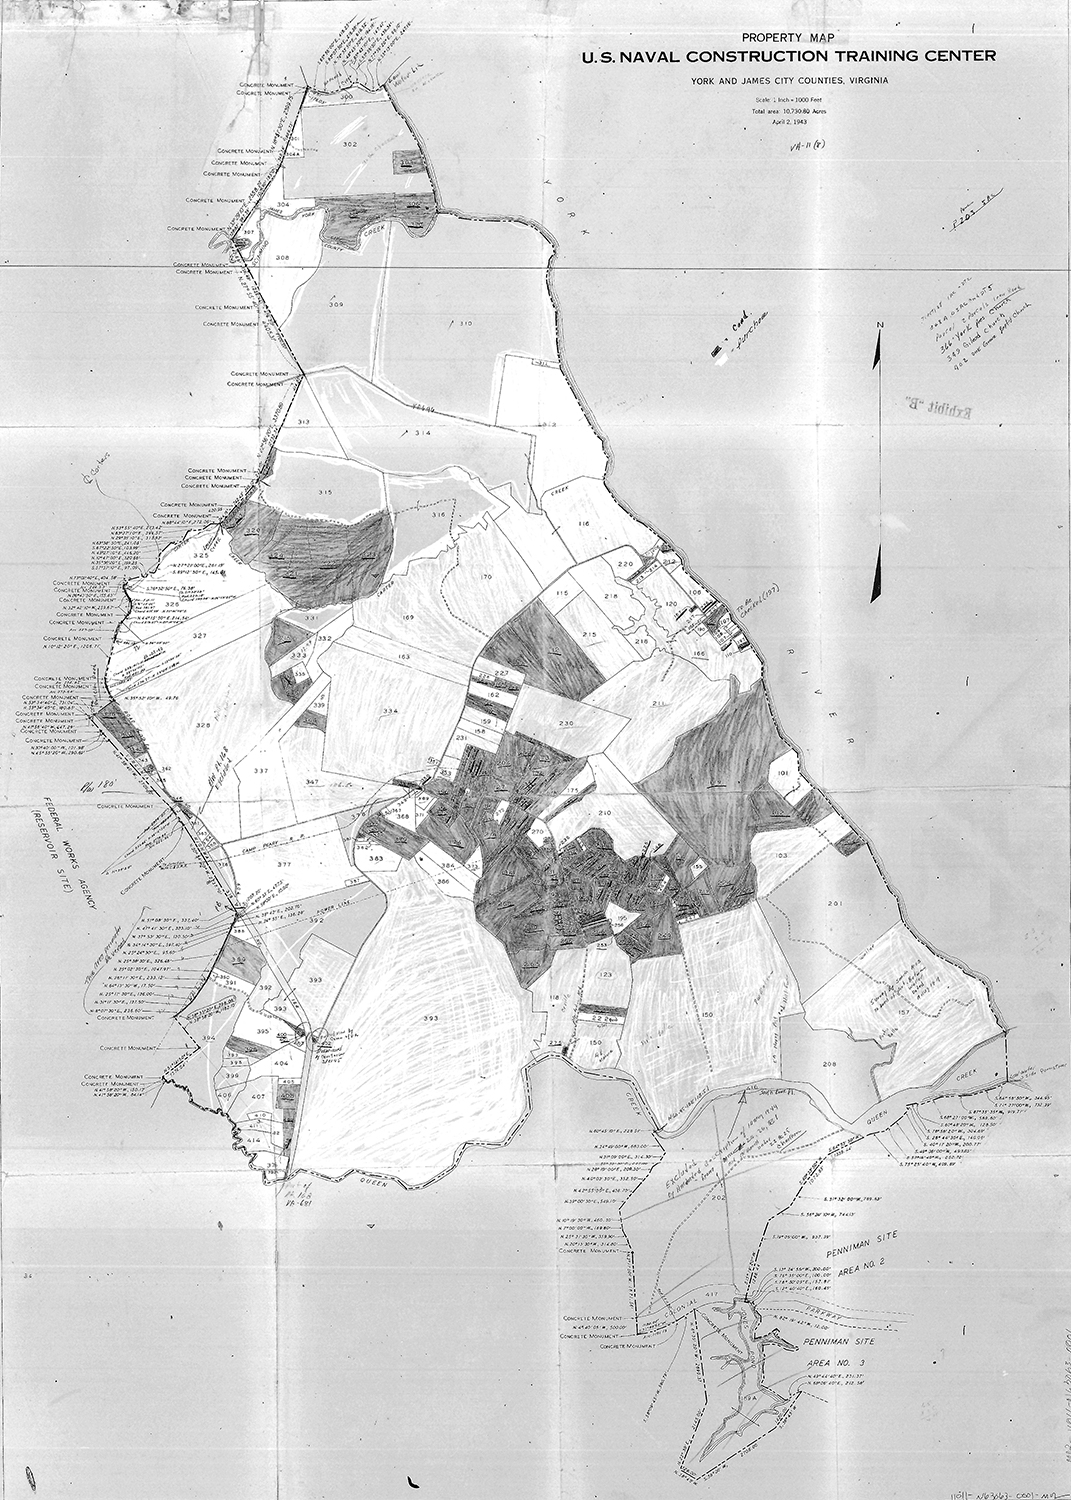 Map of property in the Magruder, VA, area condemned and taken by the U.S. government to build the naval construction training center at Camp Peary, April, 2, 1943